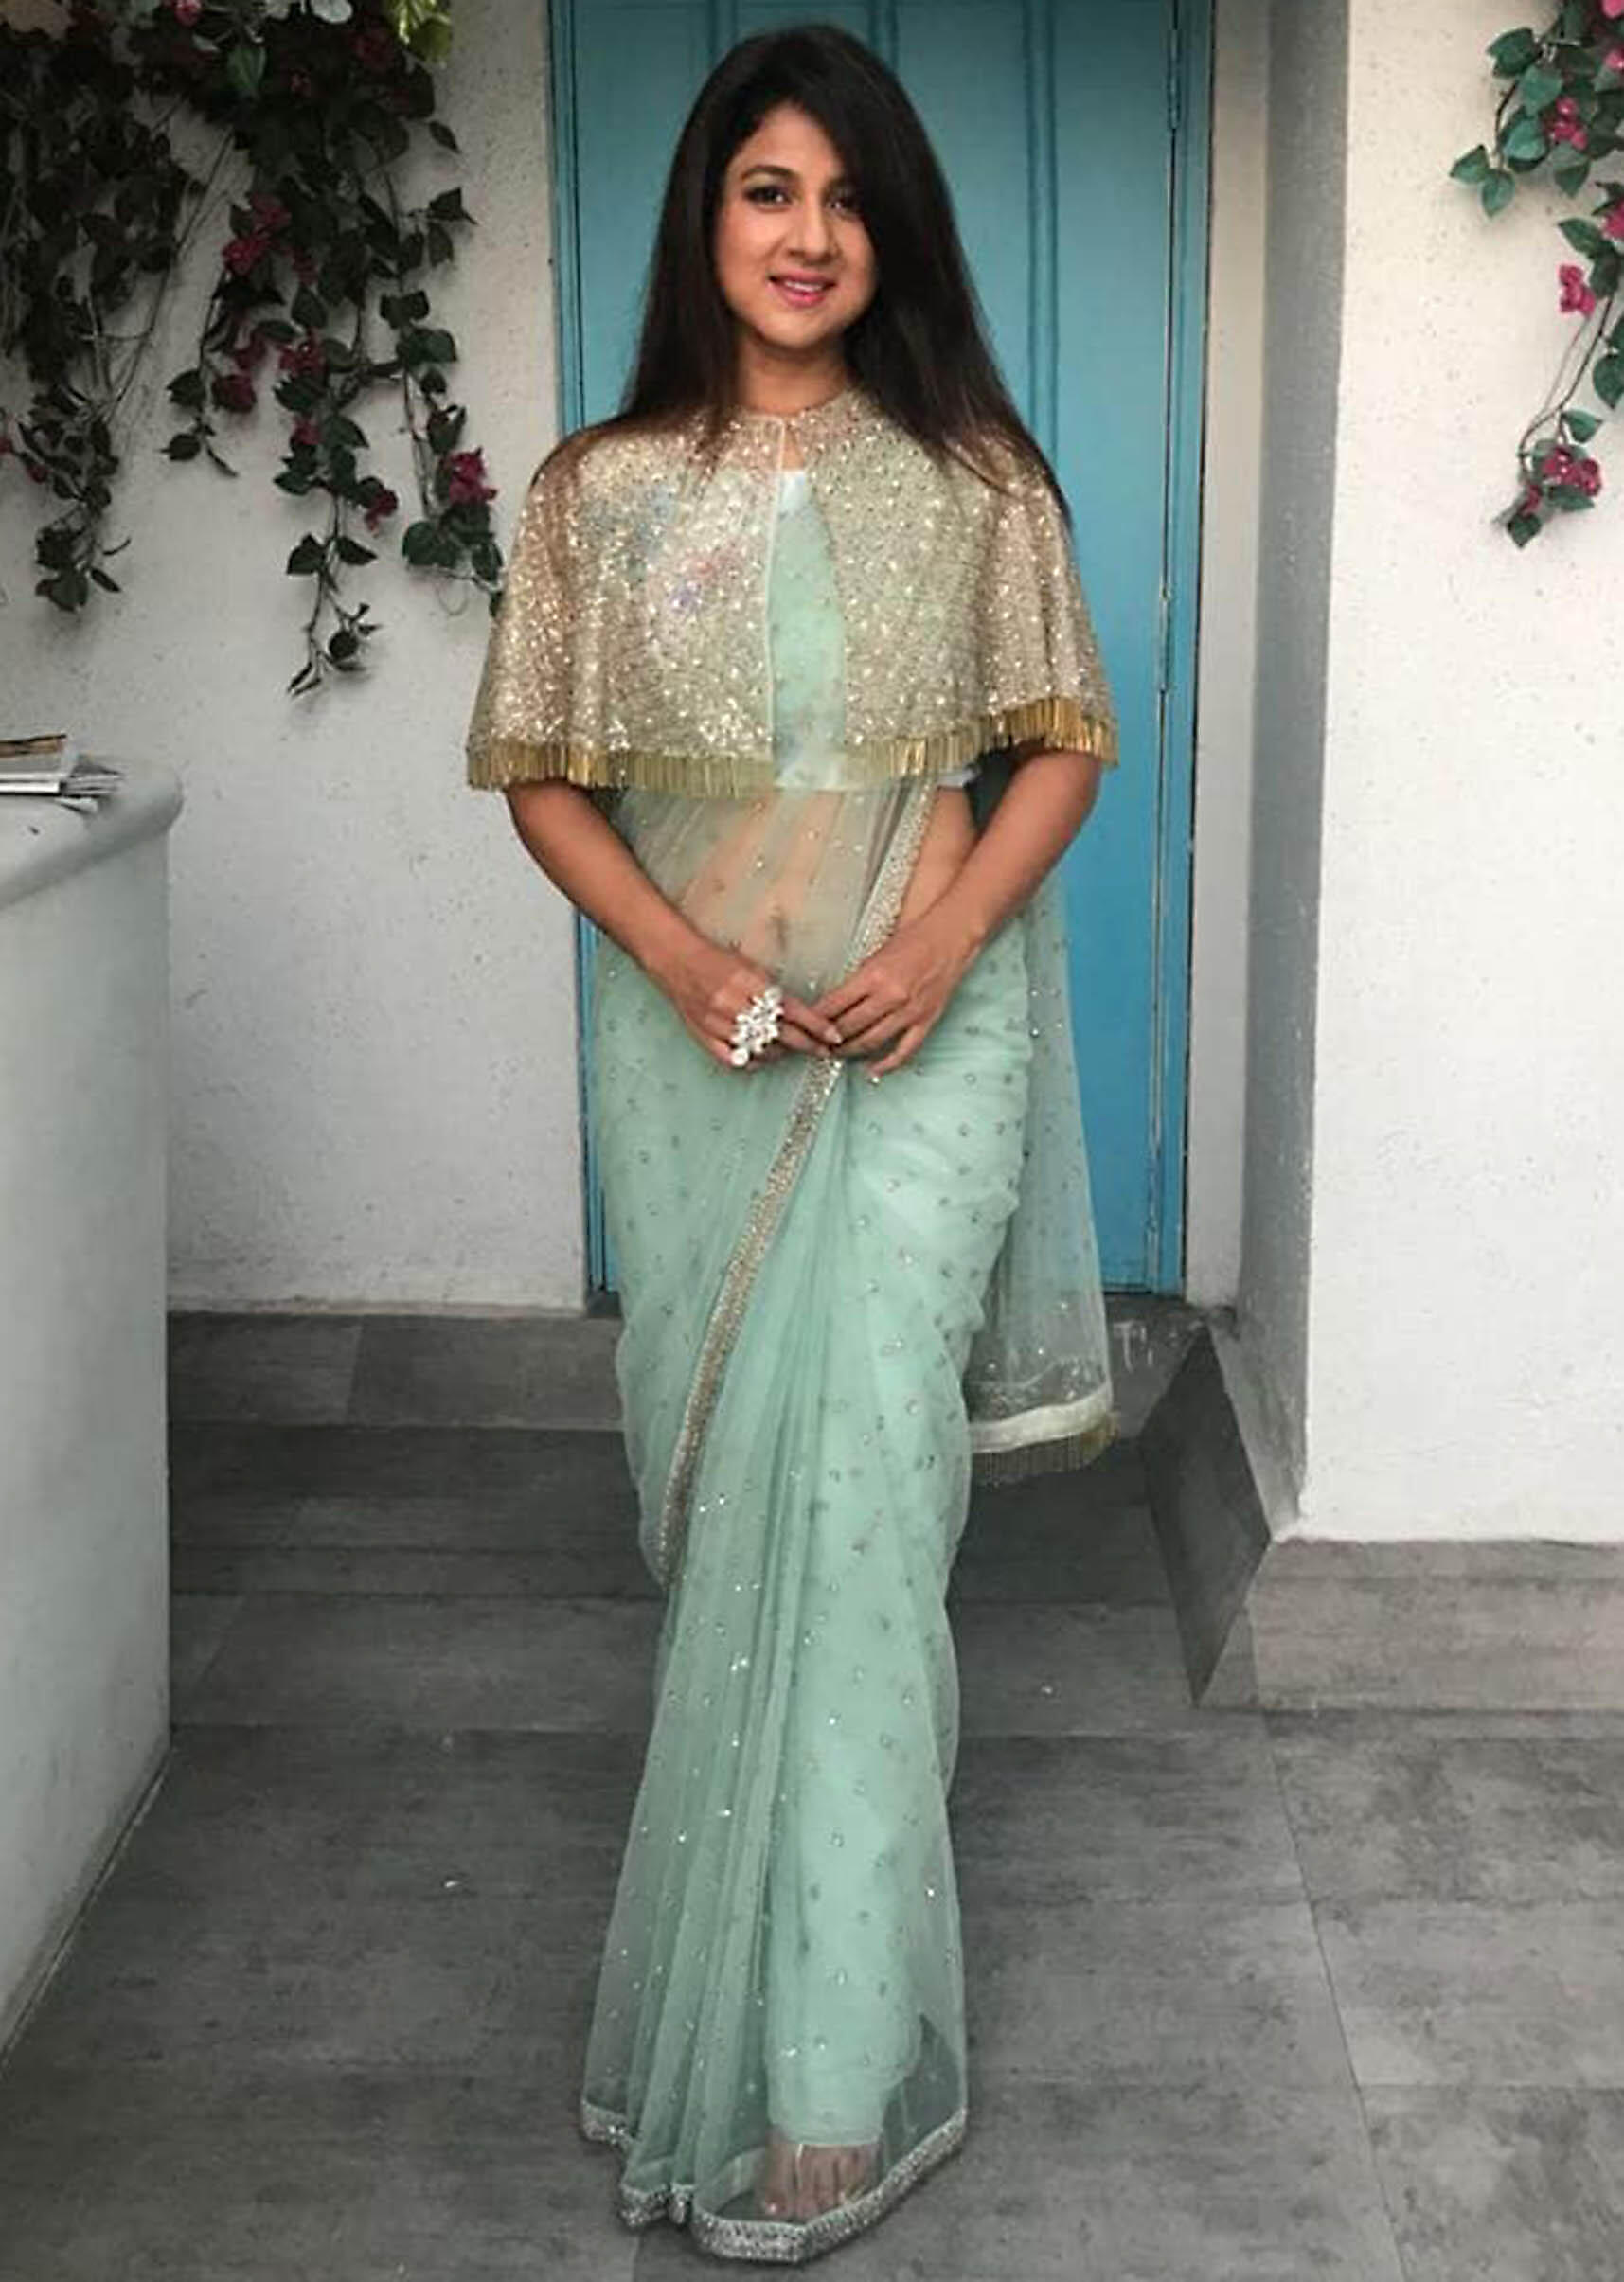 c697026430394d Mint Green Net Saree with Cape Net Blouse Featuring Sequins and Tassels  only on Kalki